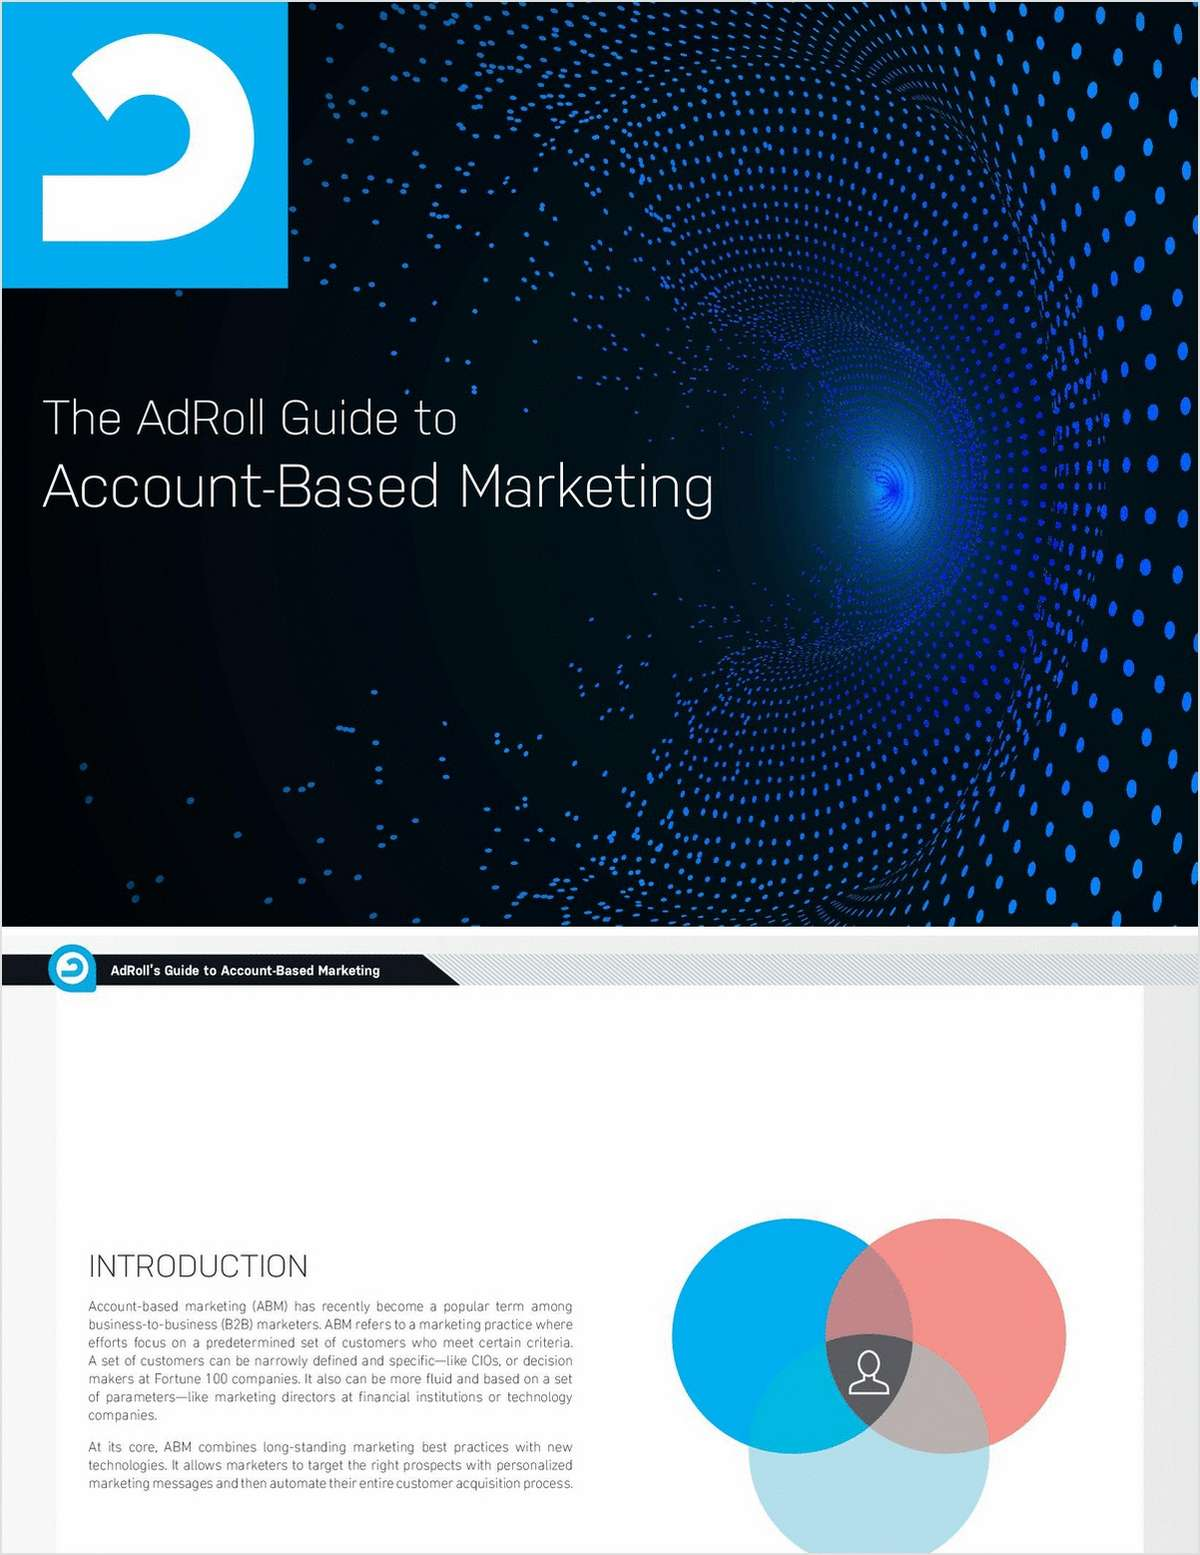 The AdRoll Guide to Account-Based Marketing